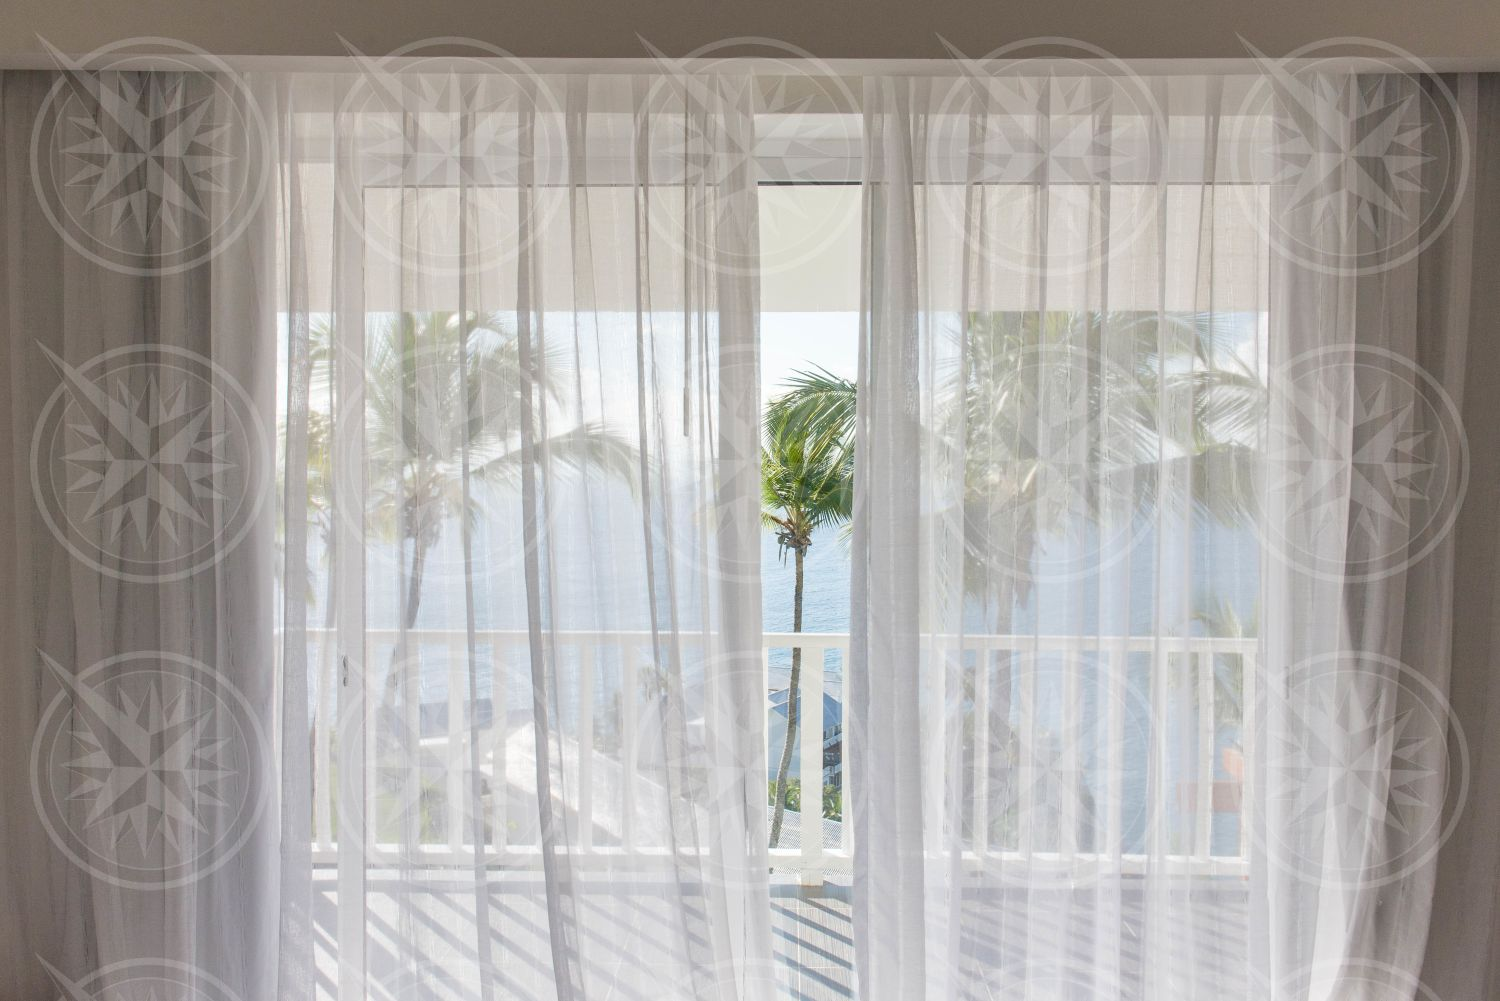 Coconut palm trees through curtains from inside